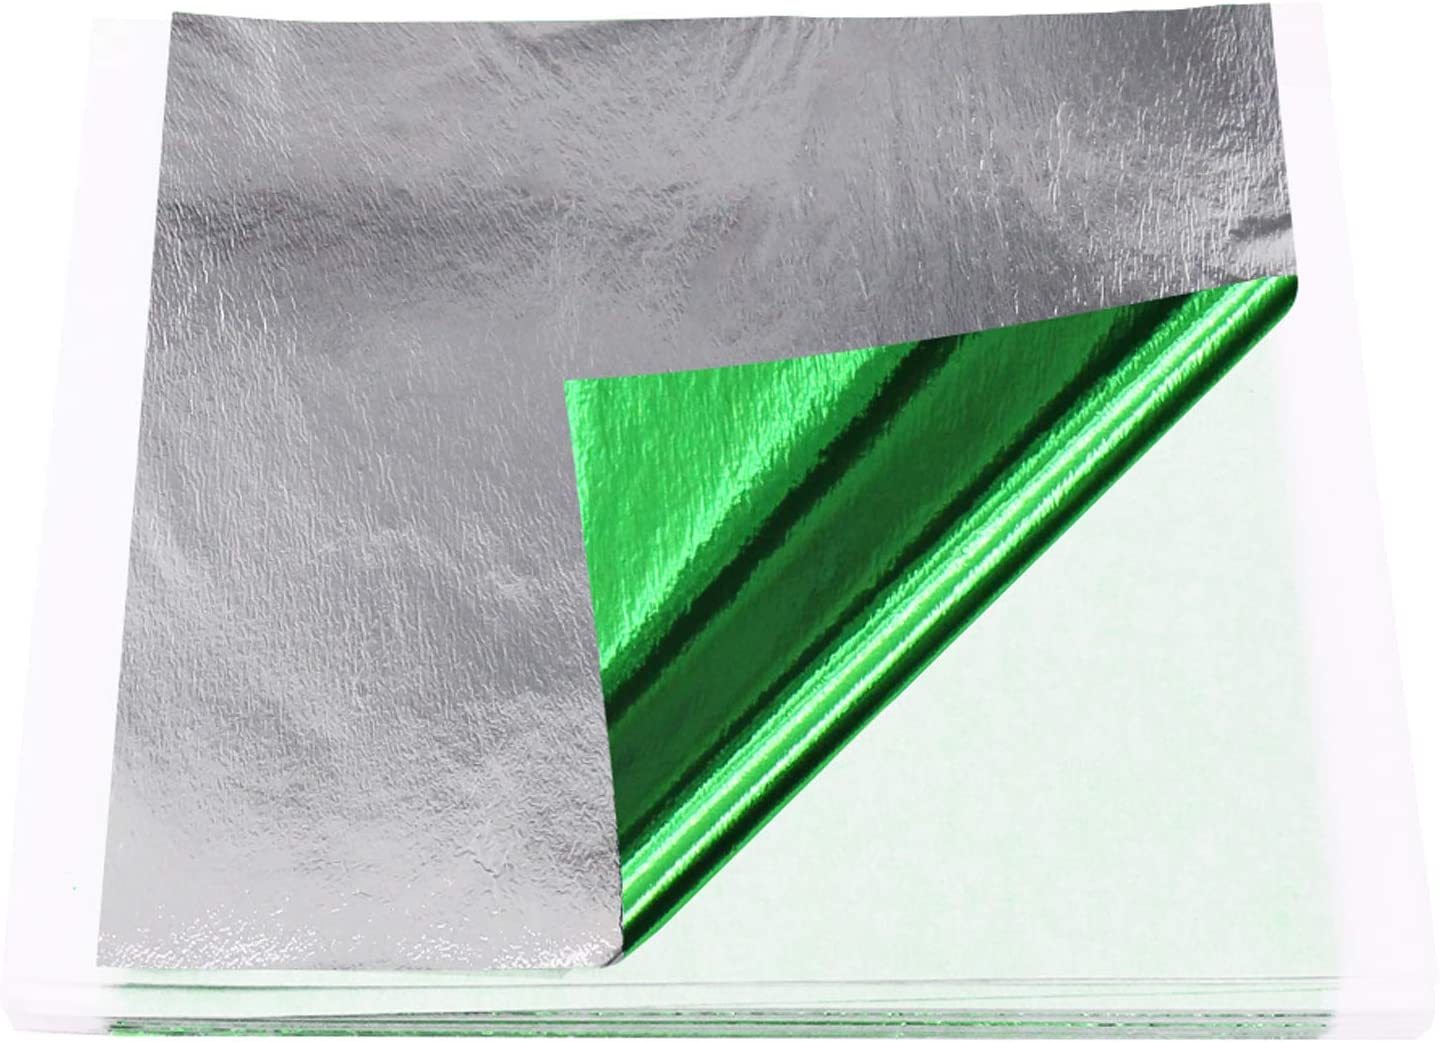 KINNO Imitation Gold Leaf Sheets - Green Silver Foil Multipurpose for Home, Wall, Frame, Ceiling, Furniture Decoration, 100 Sheets 5.1 by 5.3 Inches